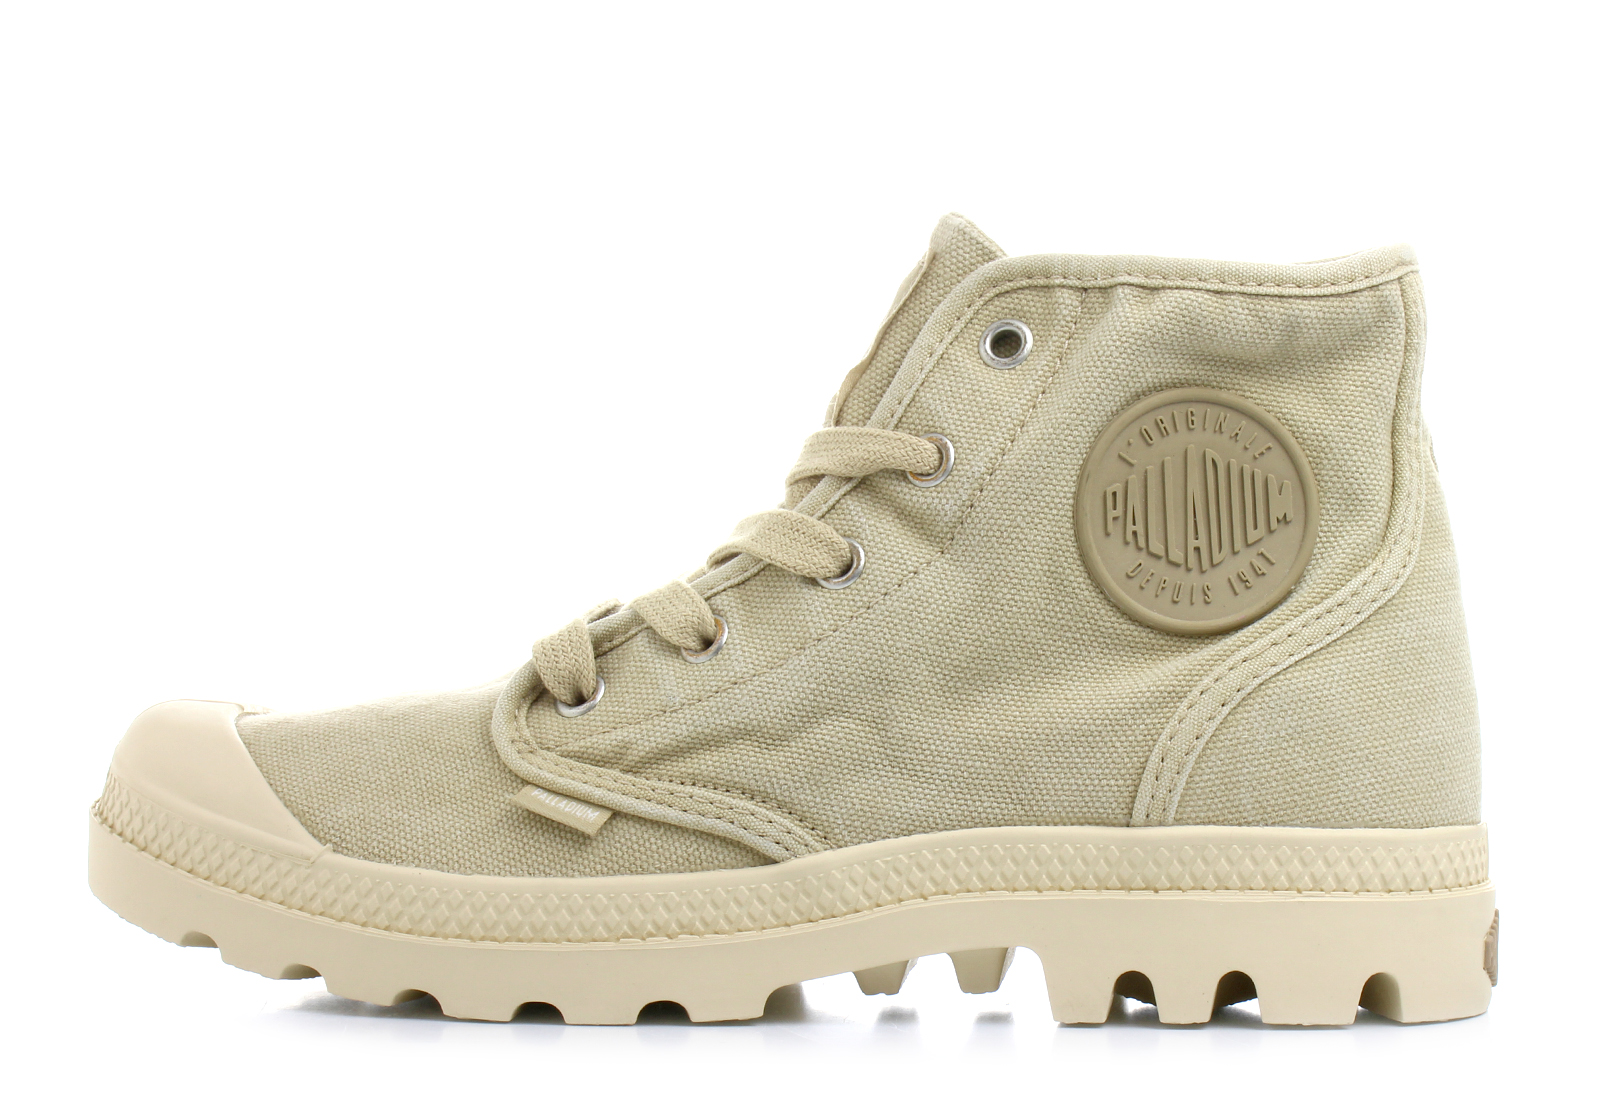 Palladium Shoes Pampa Hi 92352 238 M Online shop for sneakers, shoes and boots